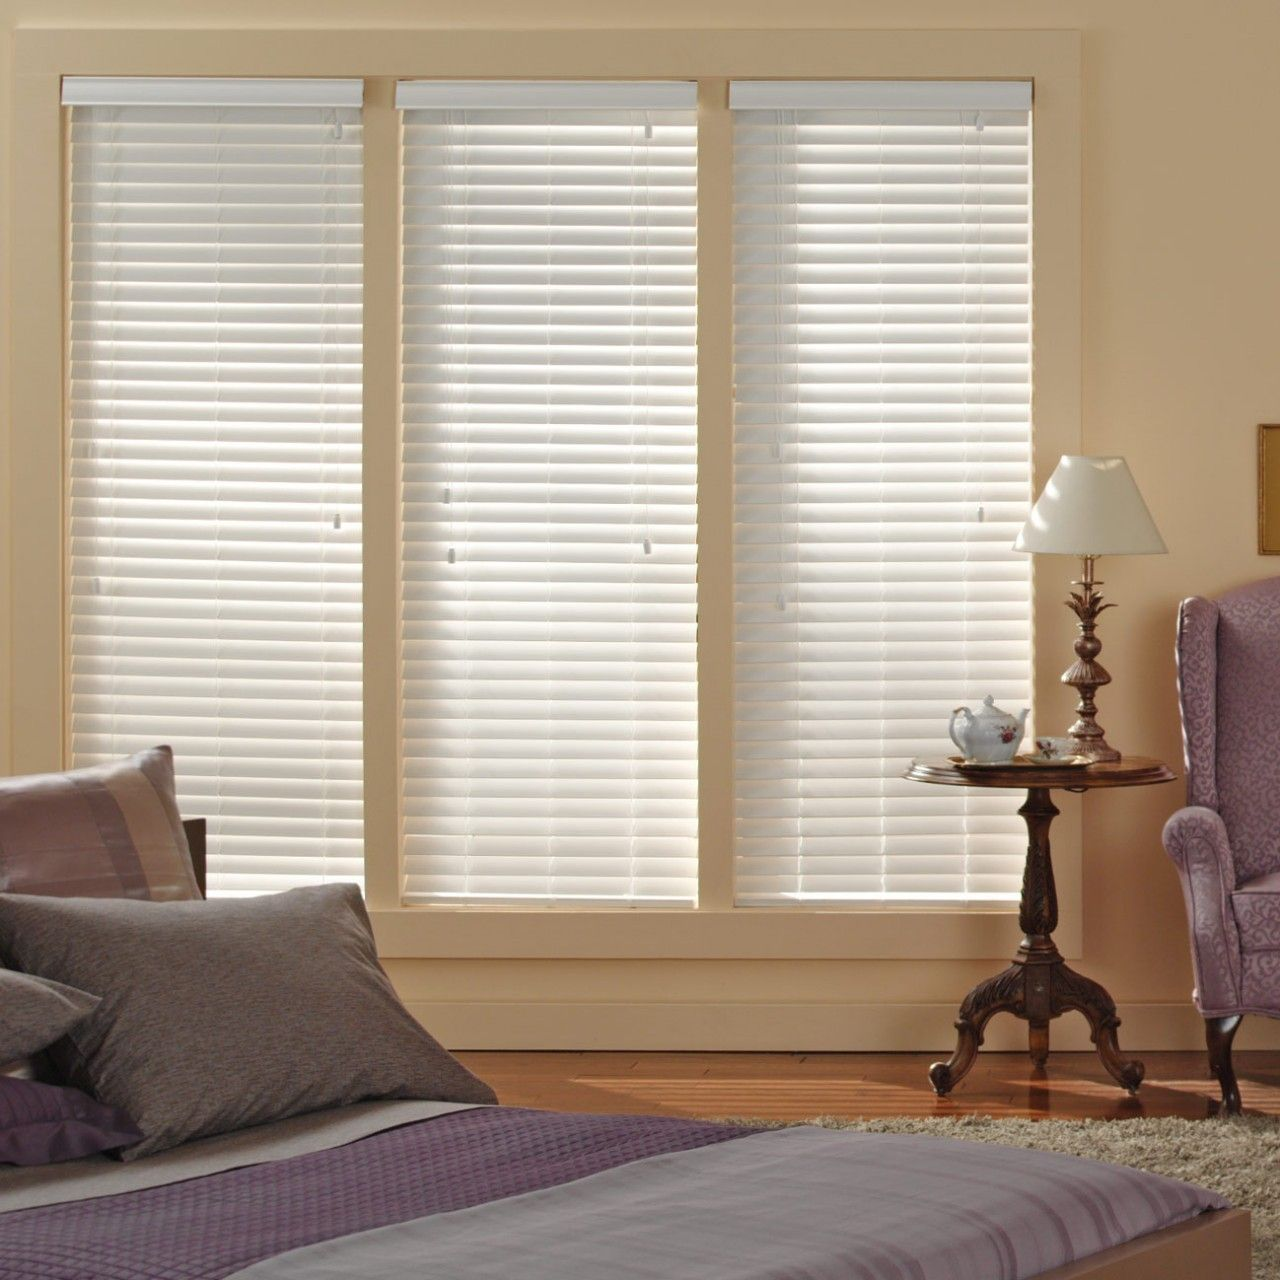 Inexpensive! High quality custom faux wood window blinds